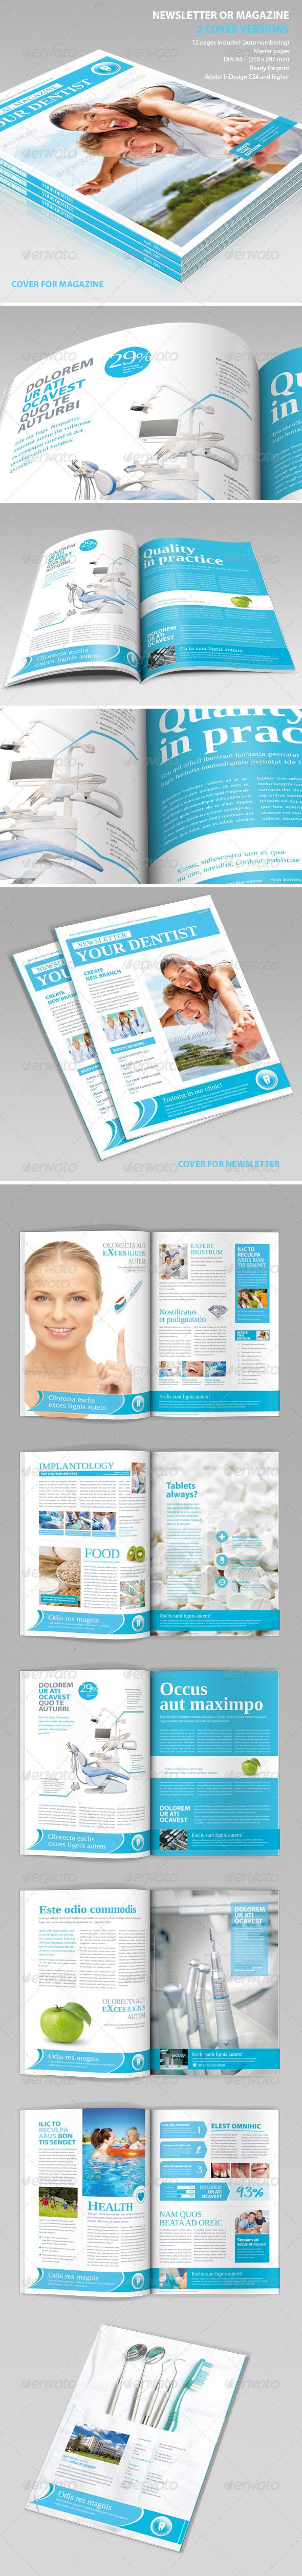 Medical Newsletter or Magazine #GraphicRiver Newsletter. Perfect for medical or other business promotion 12 pages possibility of creating many unique spreads. All elements are editable. All icons and badges included. FEATURES 3 x *.indd files: - your dentist.indd – one cover version and all inside pages - your dentist cover for brochure.indd – secound cover version - ridge of the newsletter your dentist. indd – file with ridge 12 x pages in *.Indd file